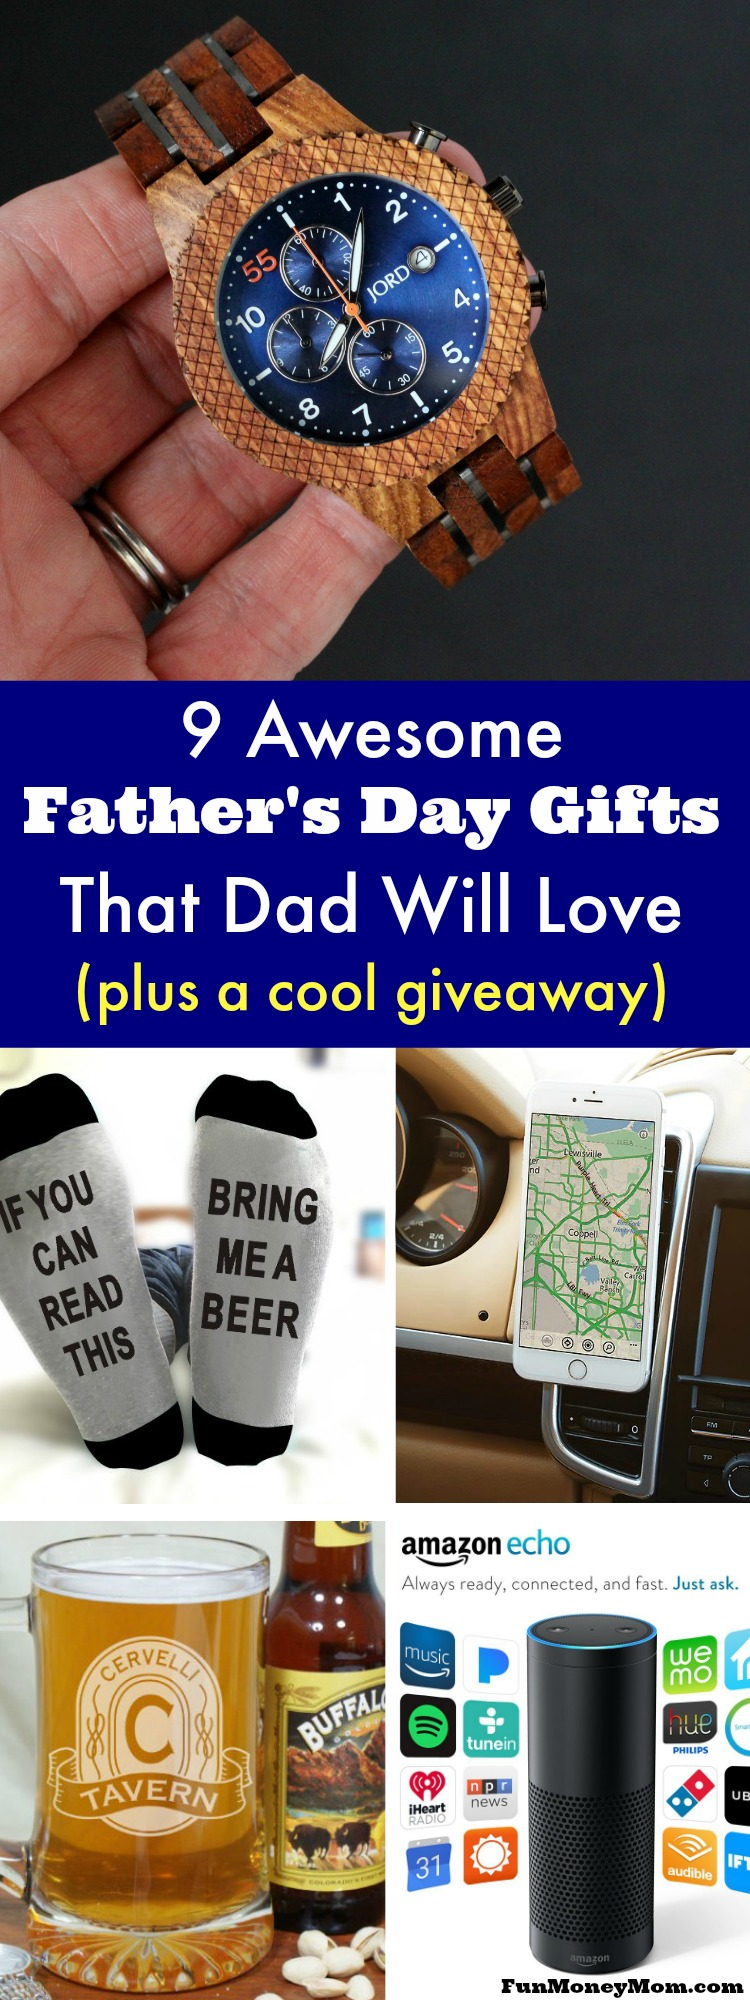 Looking for the best Father's Day gifts for the man in your life? Check out these suggestions, plus enter to win an awesome giveaway.